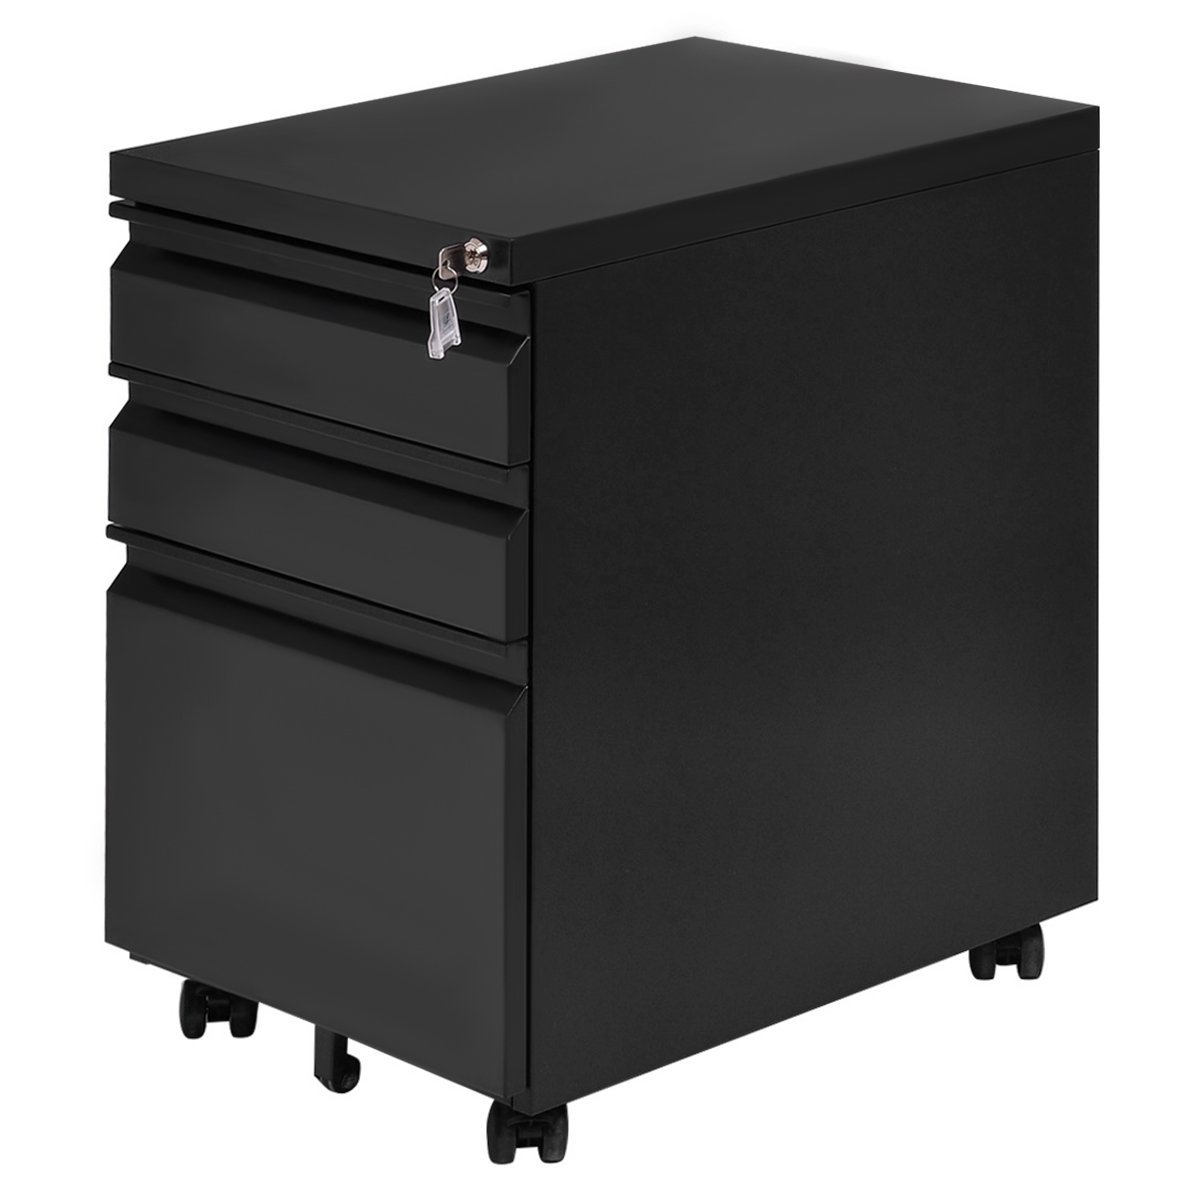 Giantex Rolling Mobile File W/3 Lockable Drawers and Pedestal for Office Study Room Home Steel Storage Cabinet